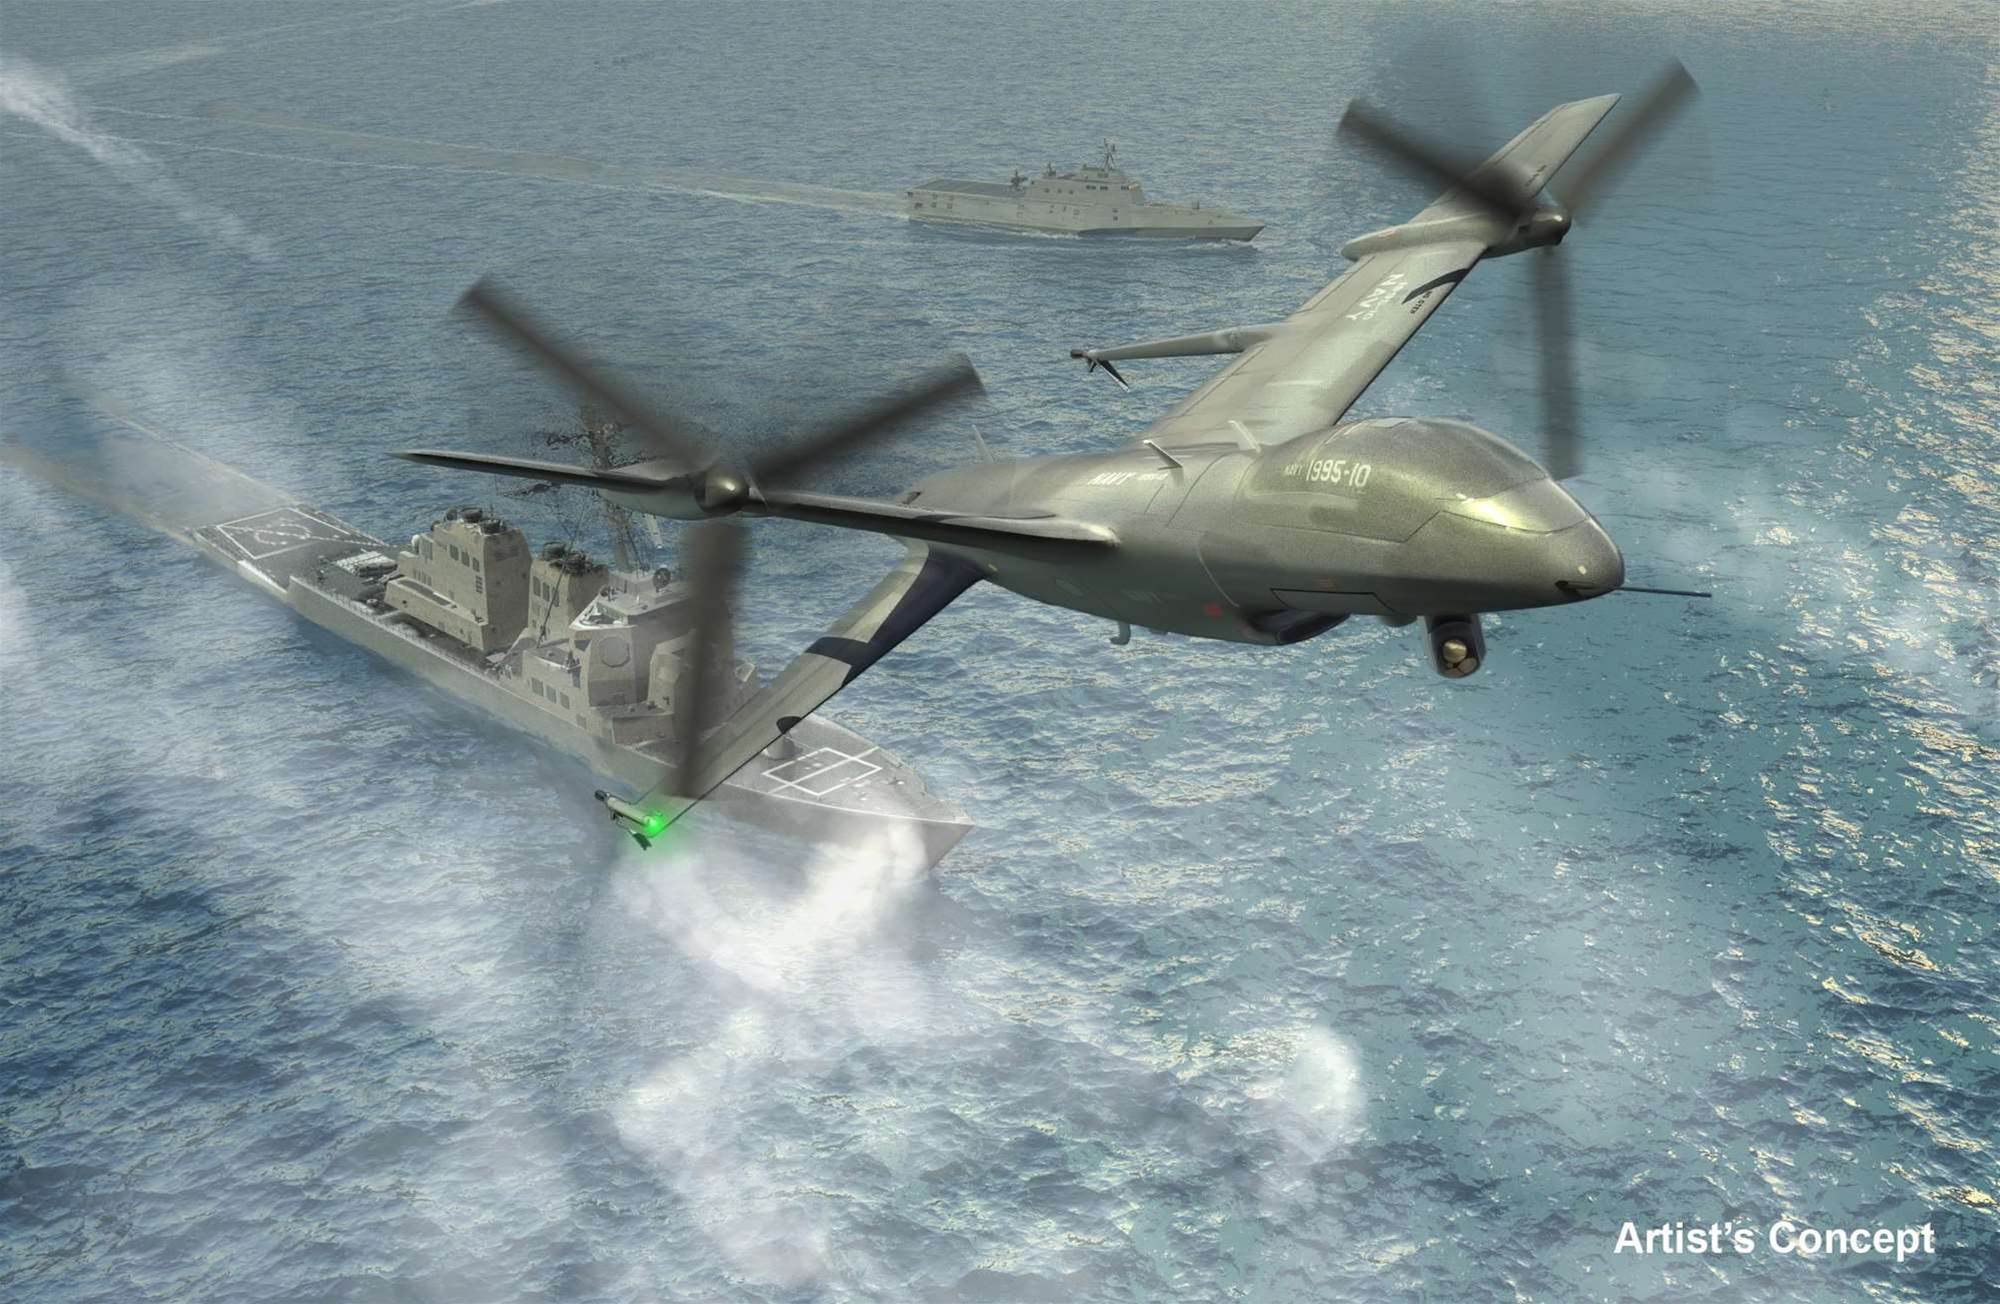 Navy's Long-Awaited Drone Moves Closer To Reality